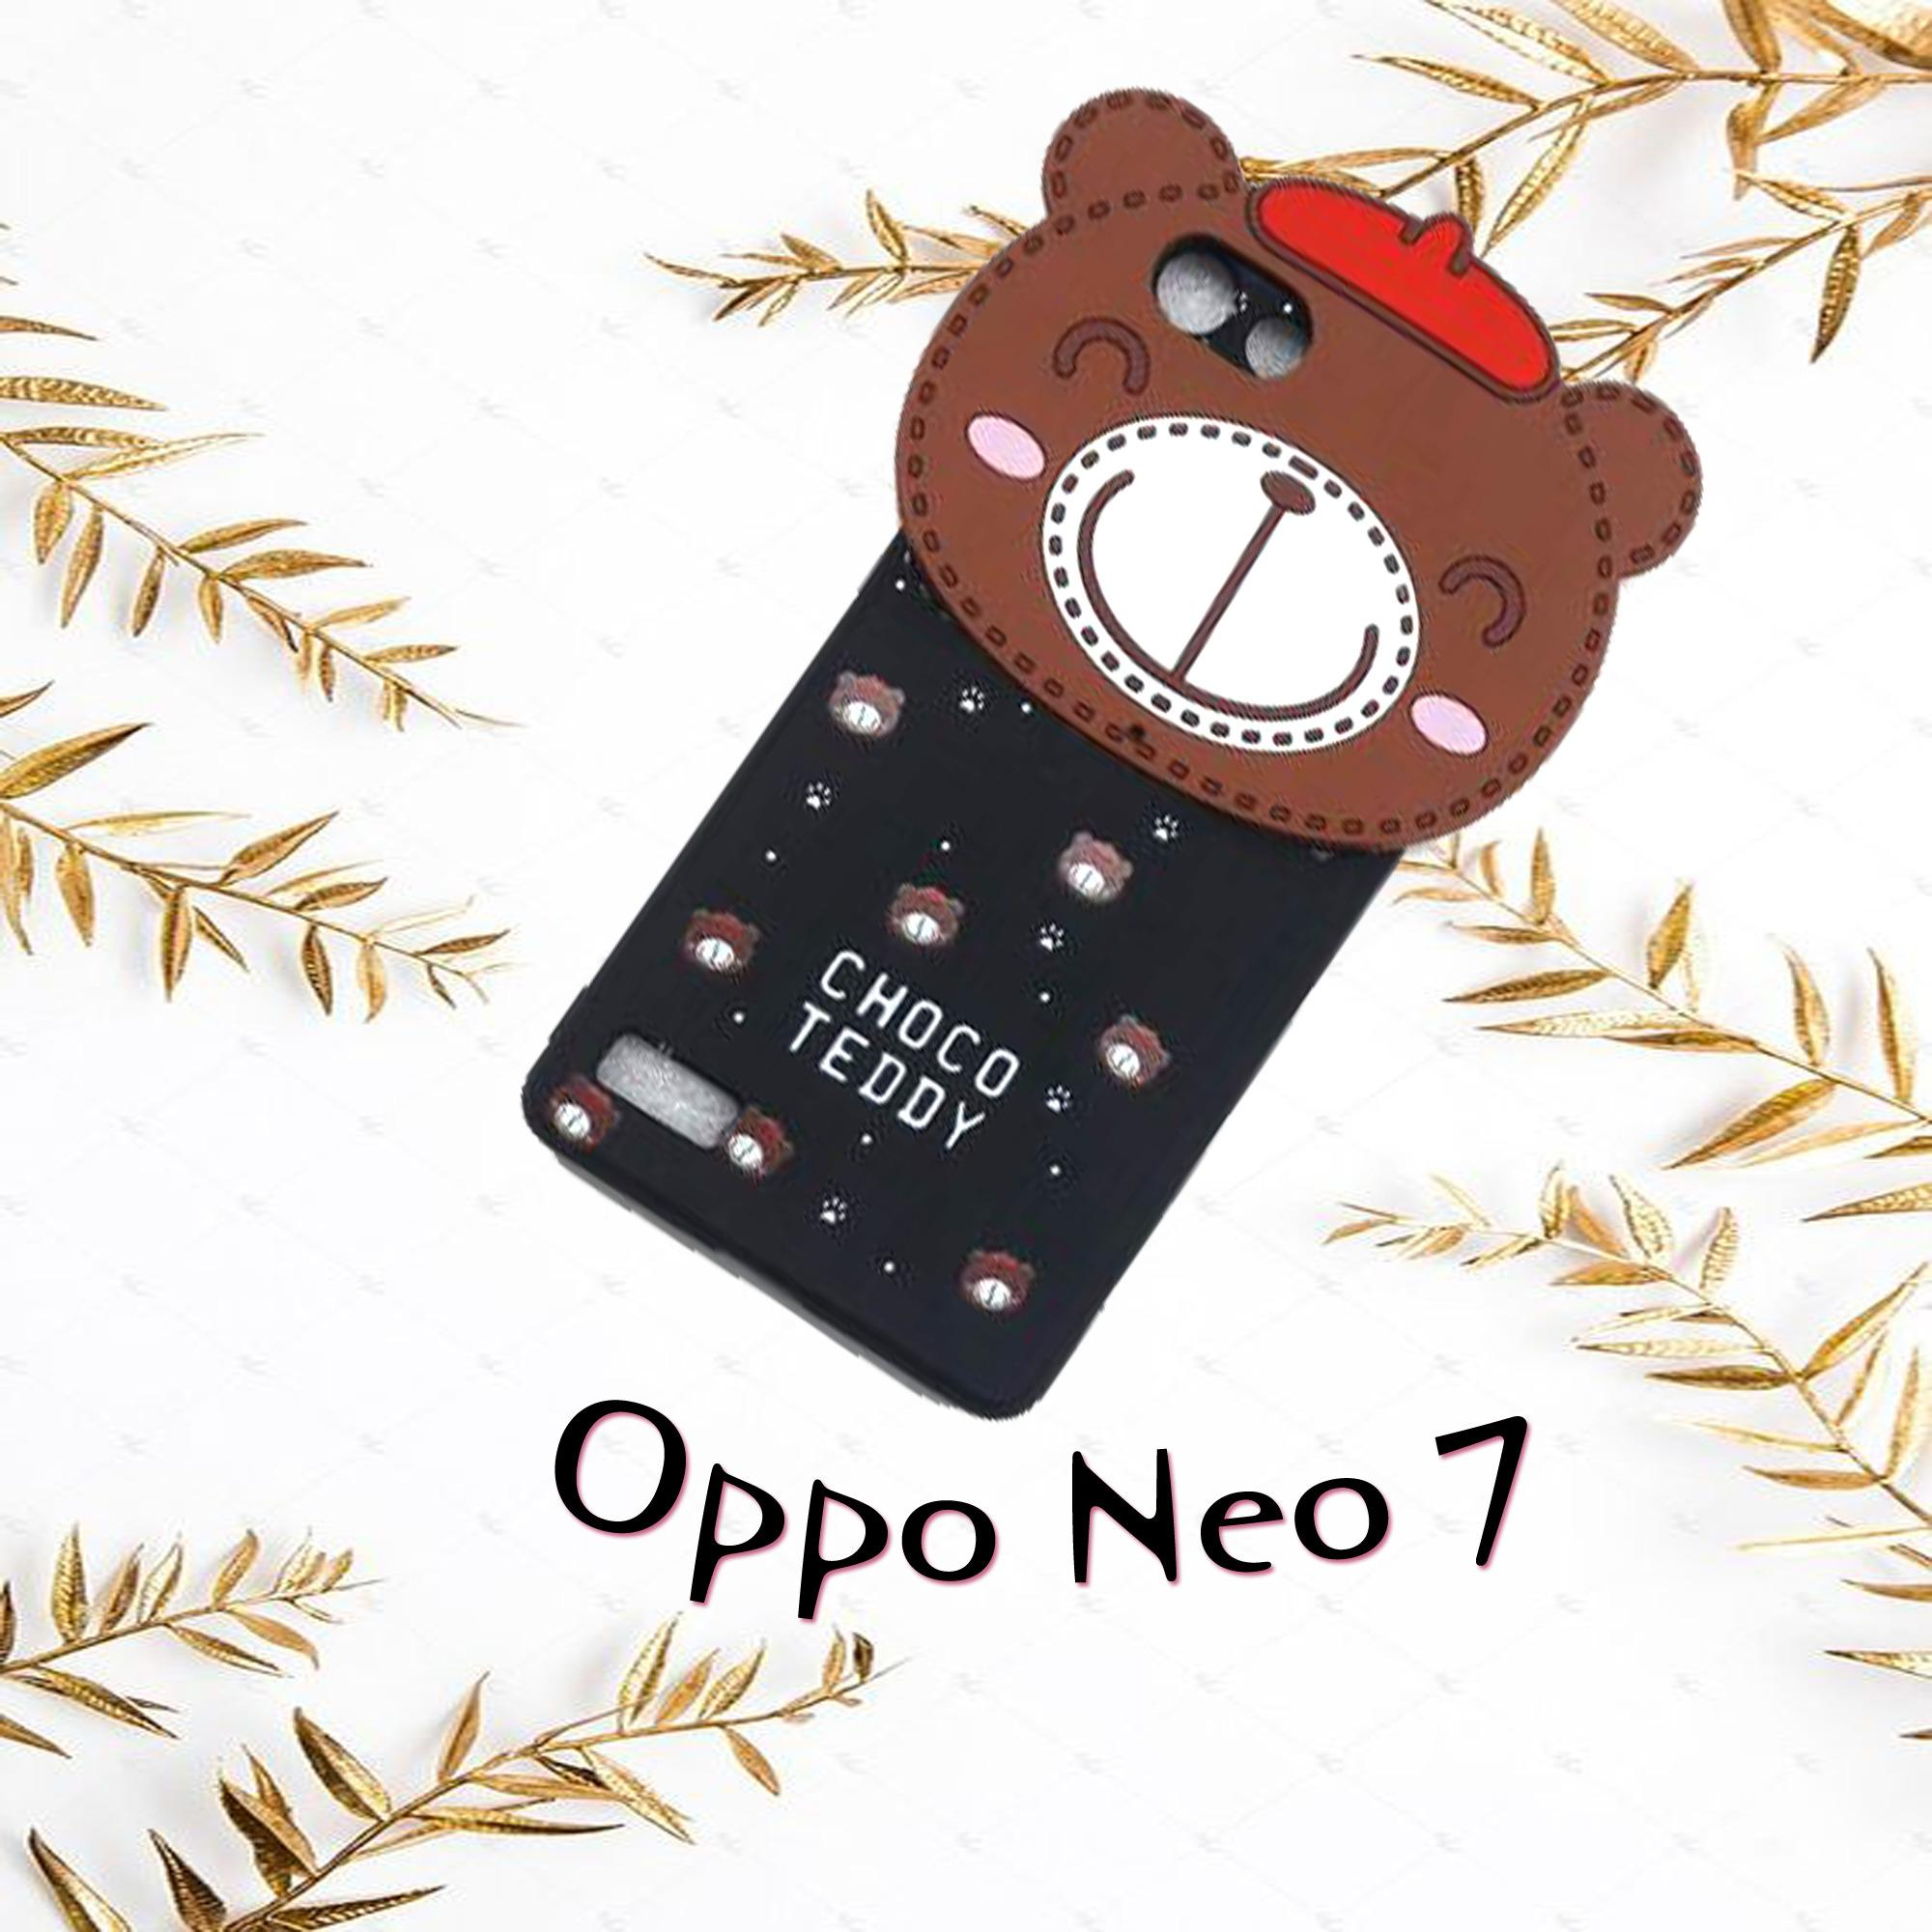 Softcase Choco Teddy New For Oppo Neo 7 - 3